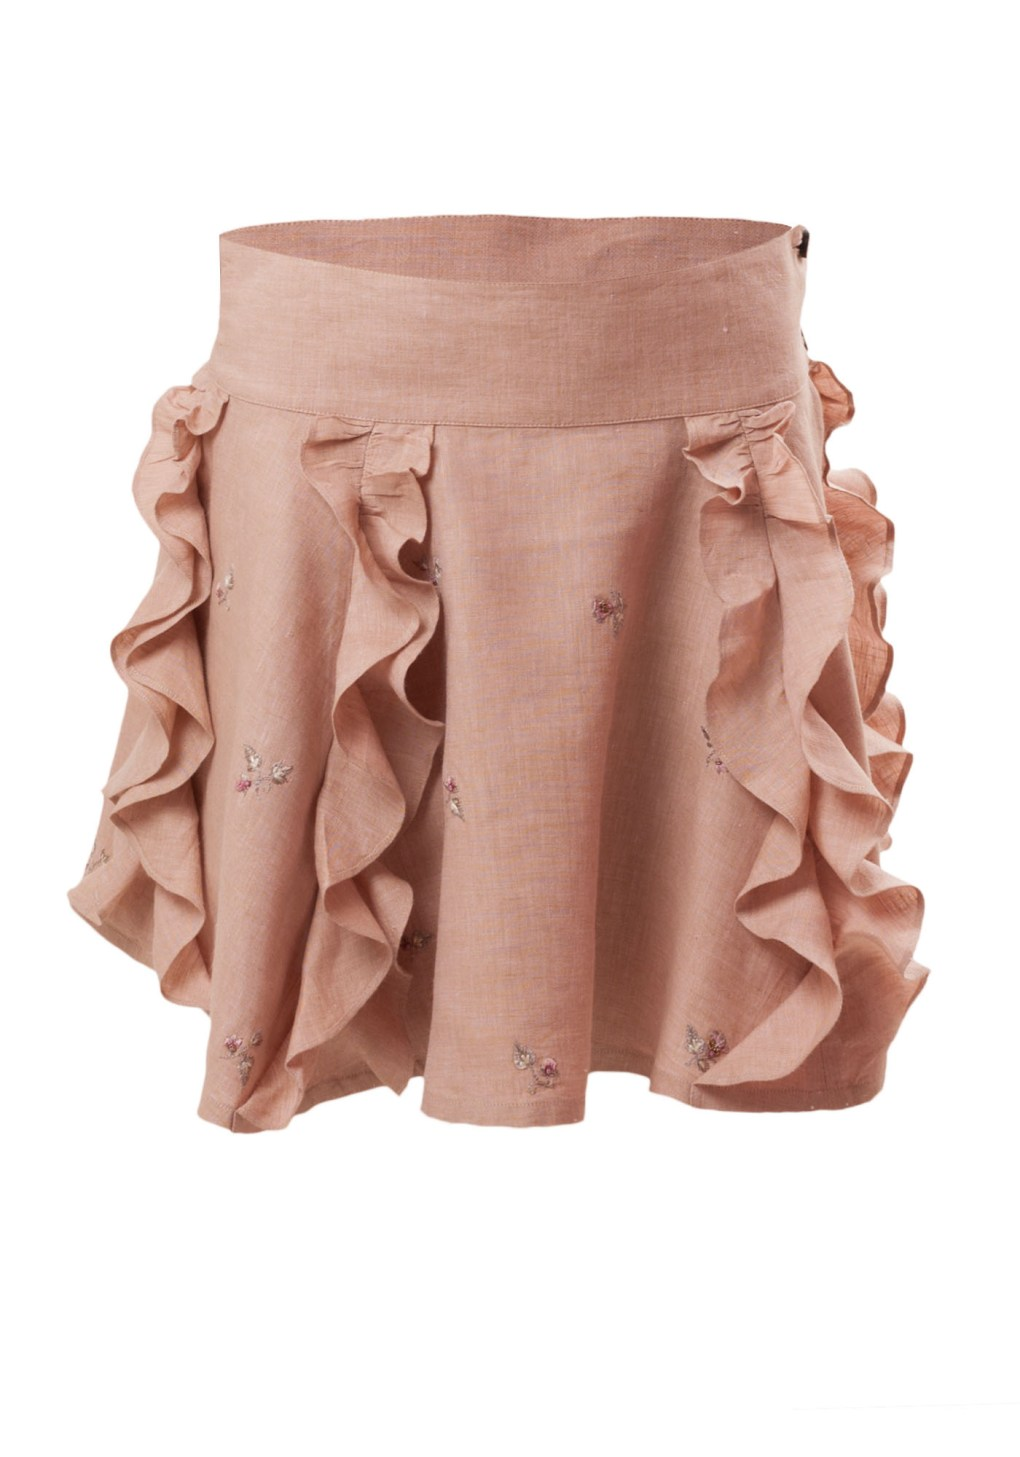 MINC Petite Frosted Almond Embroidered Girls Ruffle Skirt in Beige Linen